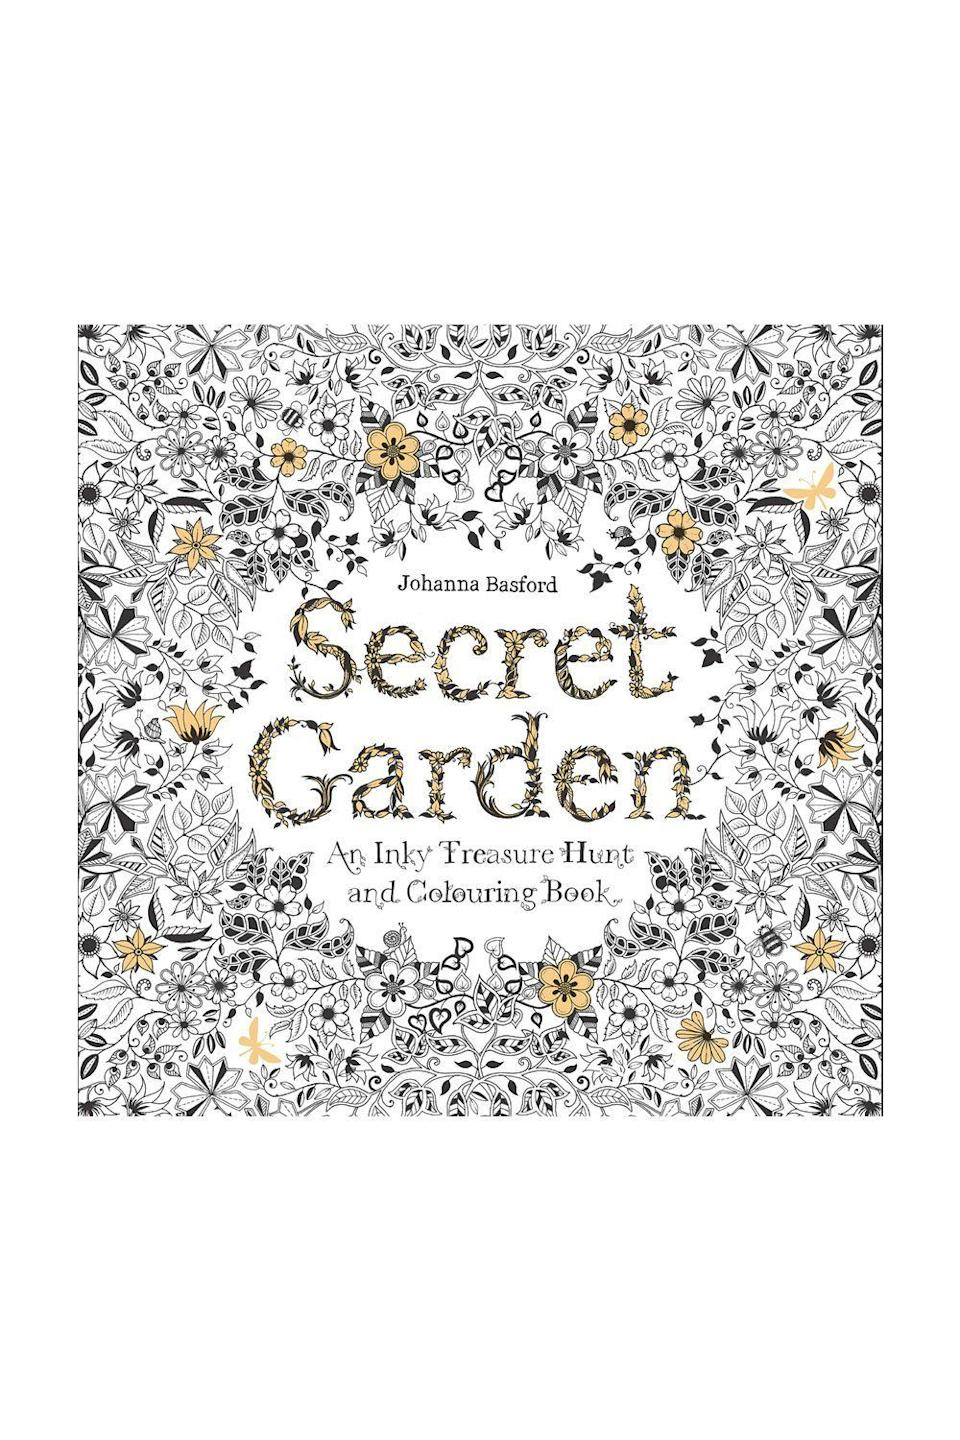 "<p><strong>ecret Garden: An Inky Treasure Hunt and Coloring Book</strong></p><p>amazon.com</p><p><strong>$9.99</strong></p><p><a href=""https://www.amazon.com/dp/1780671067?tag=syn-yahoo-20&ascsubtag=%5Bartid%7C10067.g.34414467%5Bsrc%7Cyahoo-us"" rel=""nofollow noopener"" target=""_blank"" data-ylk=""slk:Shop Now"" class=""link rapid-noclick-resp"">Shop Now</a></p><p>Beloved illustrator and adult coloring book author Johanna Basford recently revealed <a href=""https://www.instagram.com/p/B_hVj2Xluny/"" rel=""nofollow noopener"" target=""_blank"" data-ylk=""slk:on Instagram"" class=""link rapid-noclick-resp"">on Instagram</a> that when Prince William awarded her an OBE in 2016, he said his wife liked her books. ""She colours [<em>sic</em>]<em>. </em>Kate is one of us,"" she wrote.</p>"